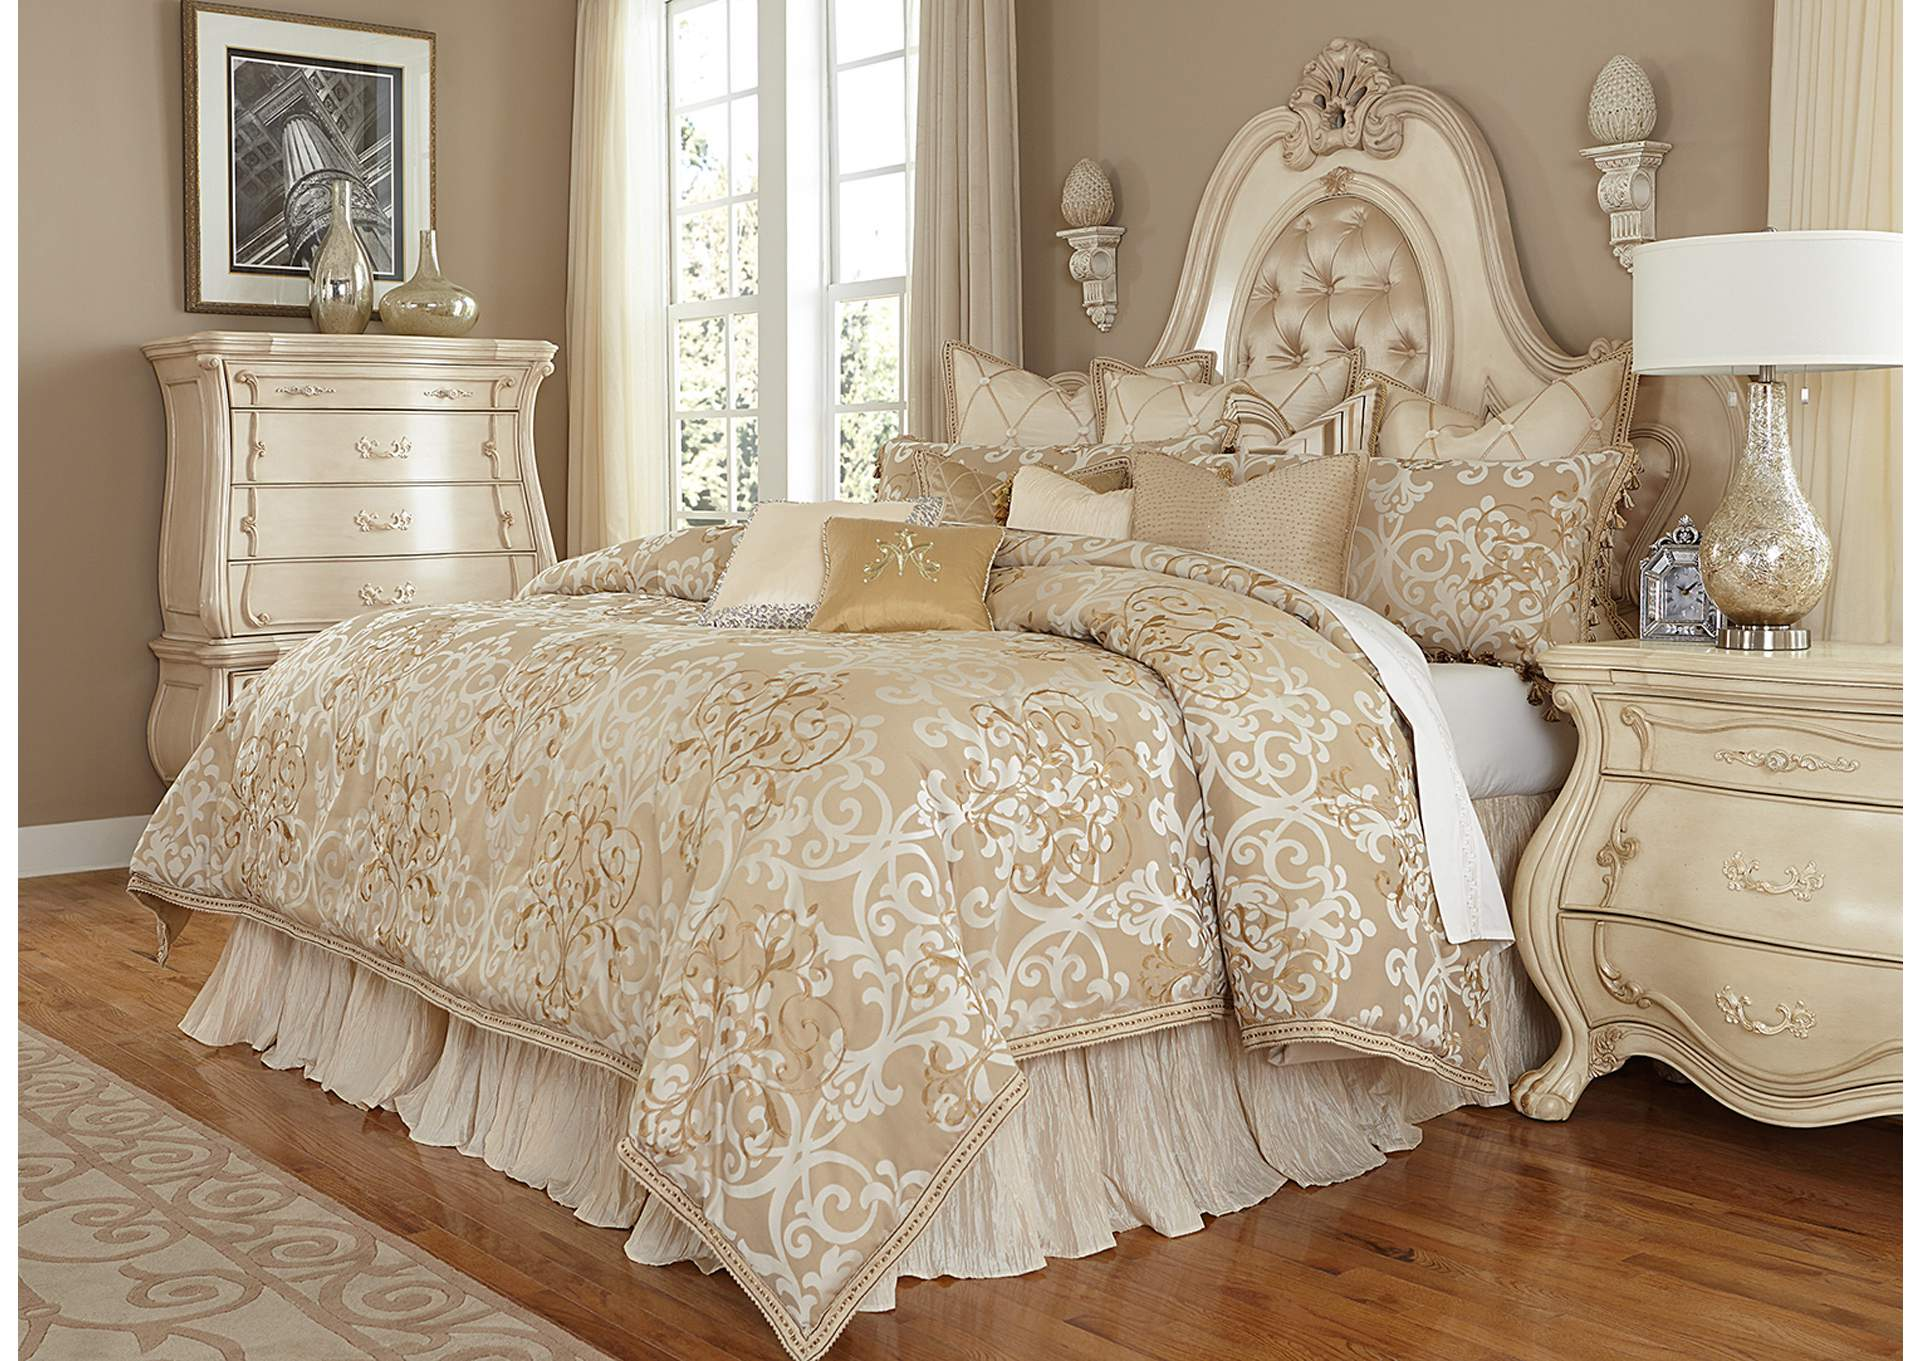 Luxembourg Cream 12 pc. Queen Comforter Set,AICO